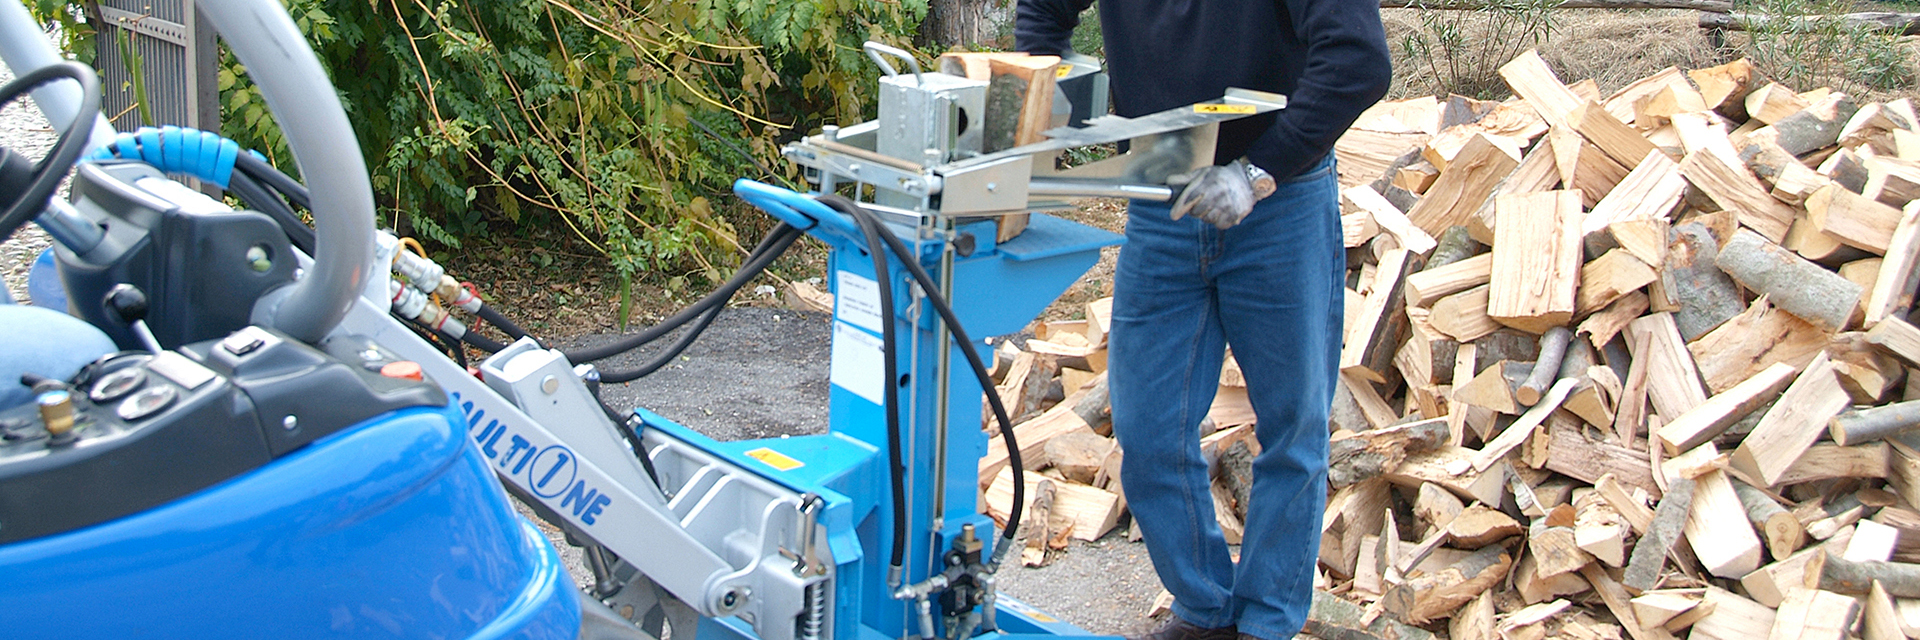 Multione-log-splitter